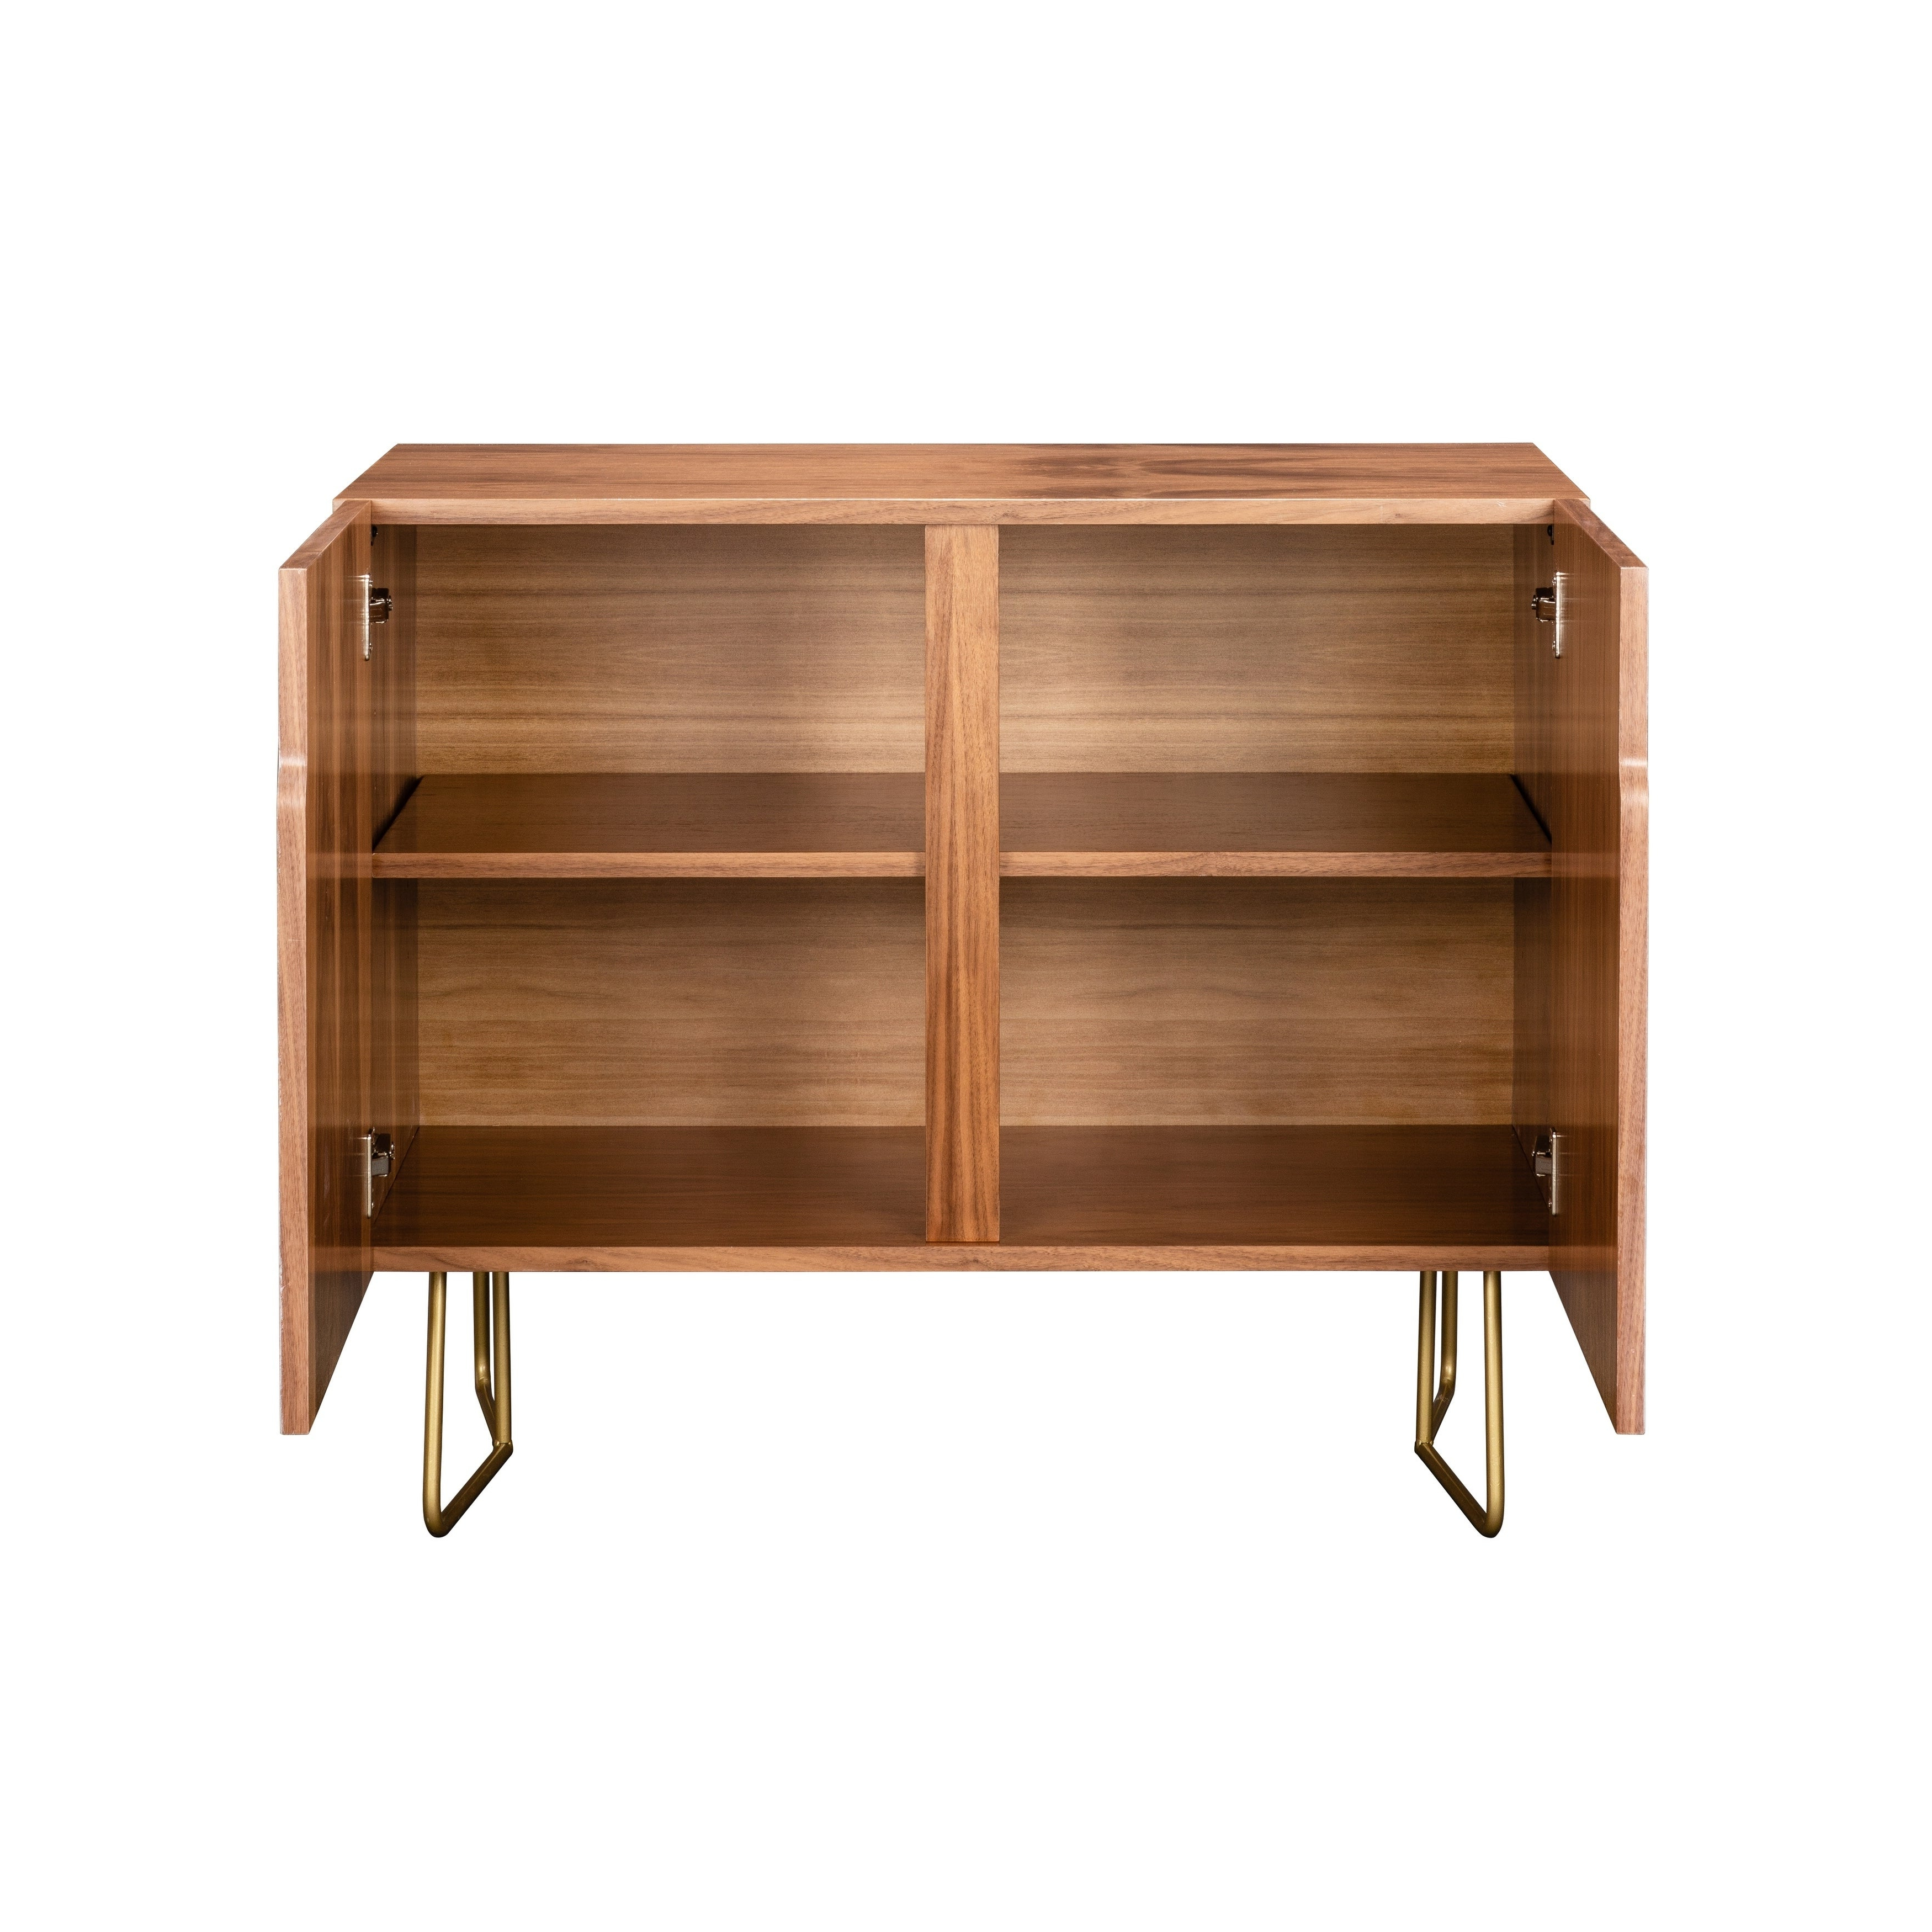 Deny Designs Multi Colored Geometric Shapes Credenza (Birch Or Walnut, 3  Leg Options) Pertaining To Multi Colored Geometric Shapes Credenzas (View 8 of 20)